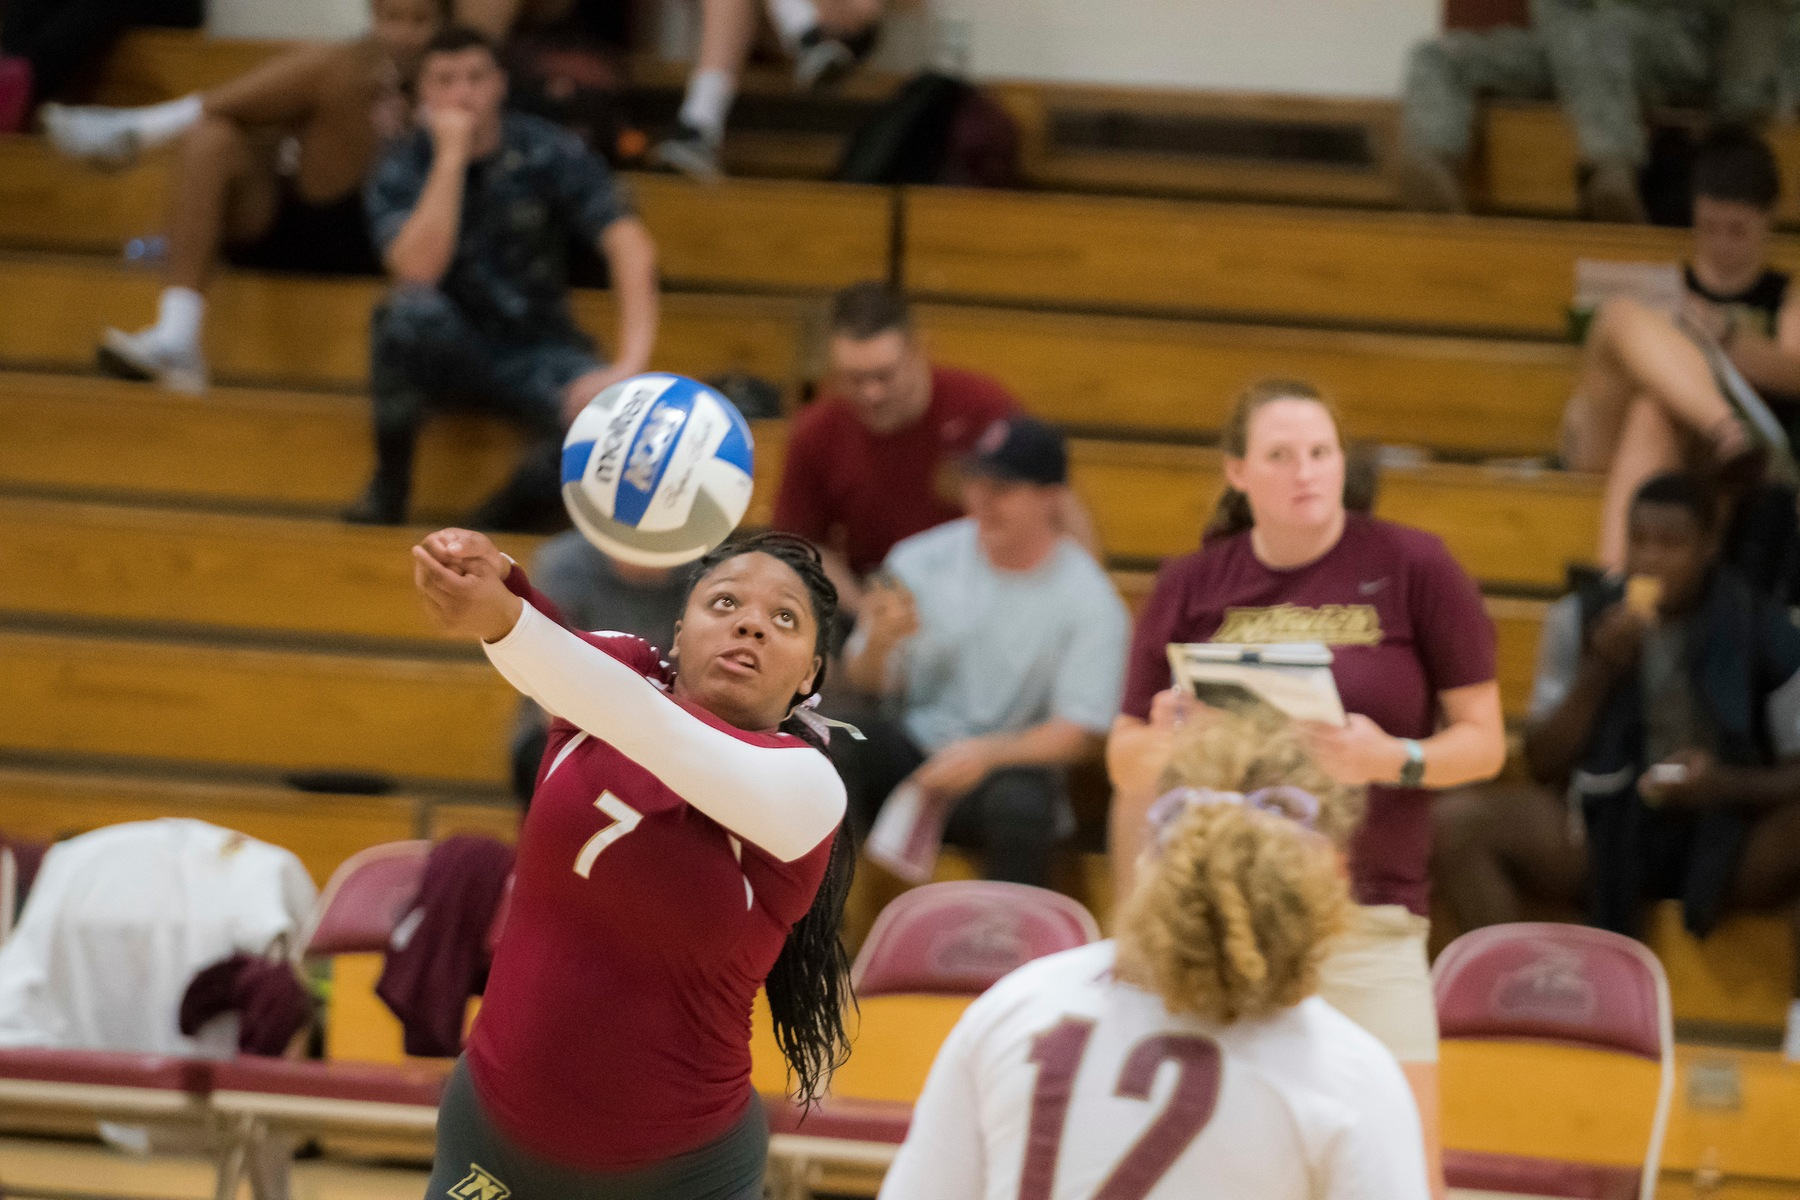 Volleyball: Cadets drop matches to Emmanuel and Albertus Magnus